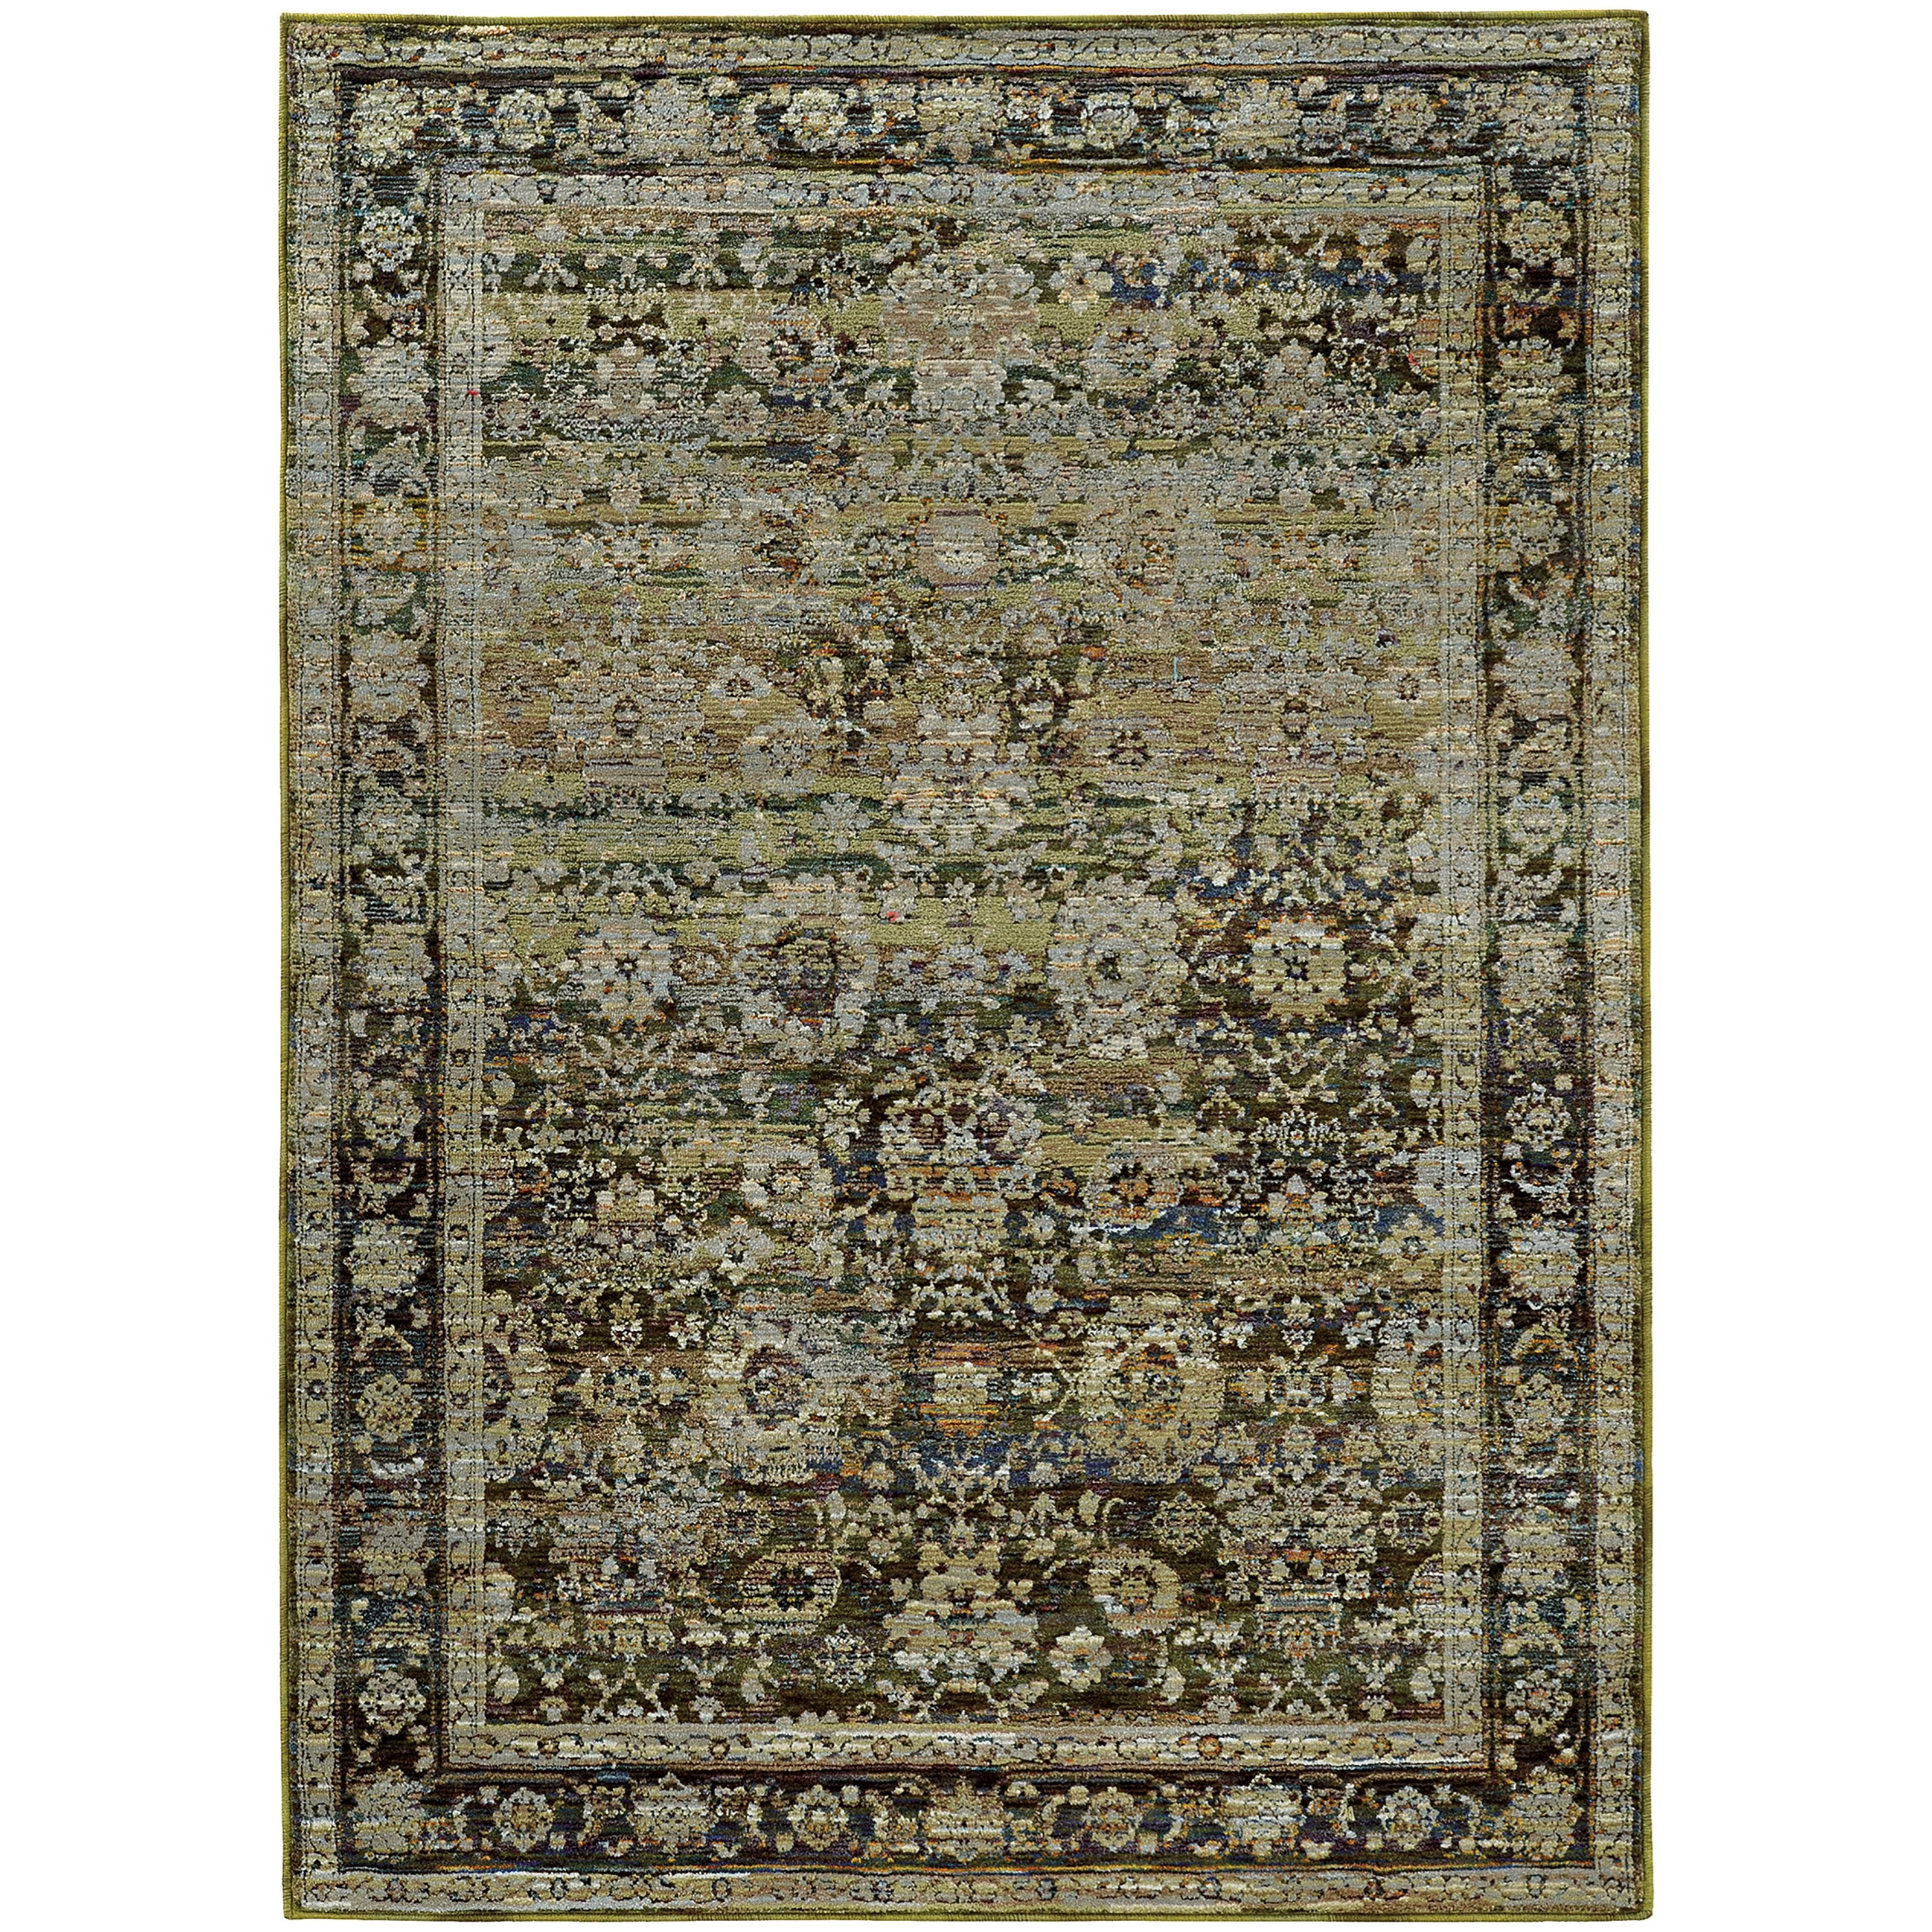 """Andorra 3' 3"""" X  5' 2"""" Casual Green/ Brown Rectangle by Oriental Weavers at Steger's Furniture"""